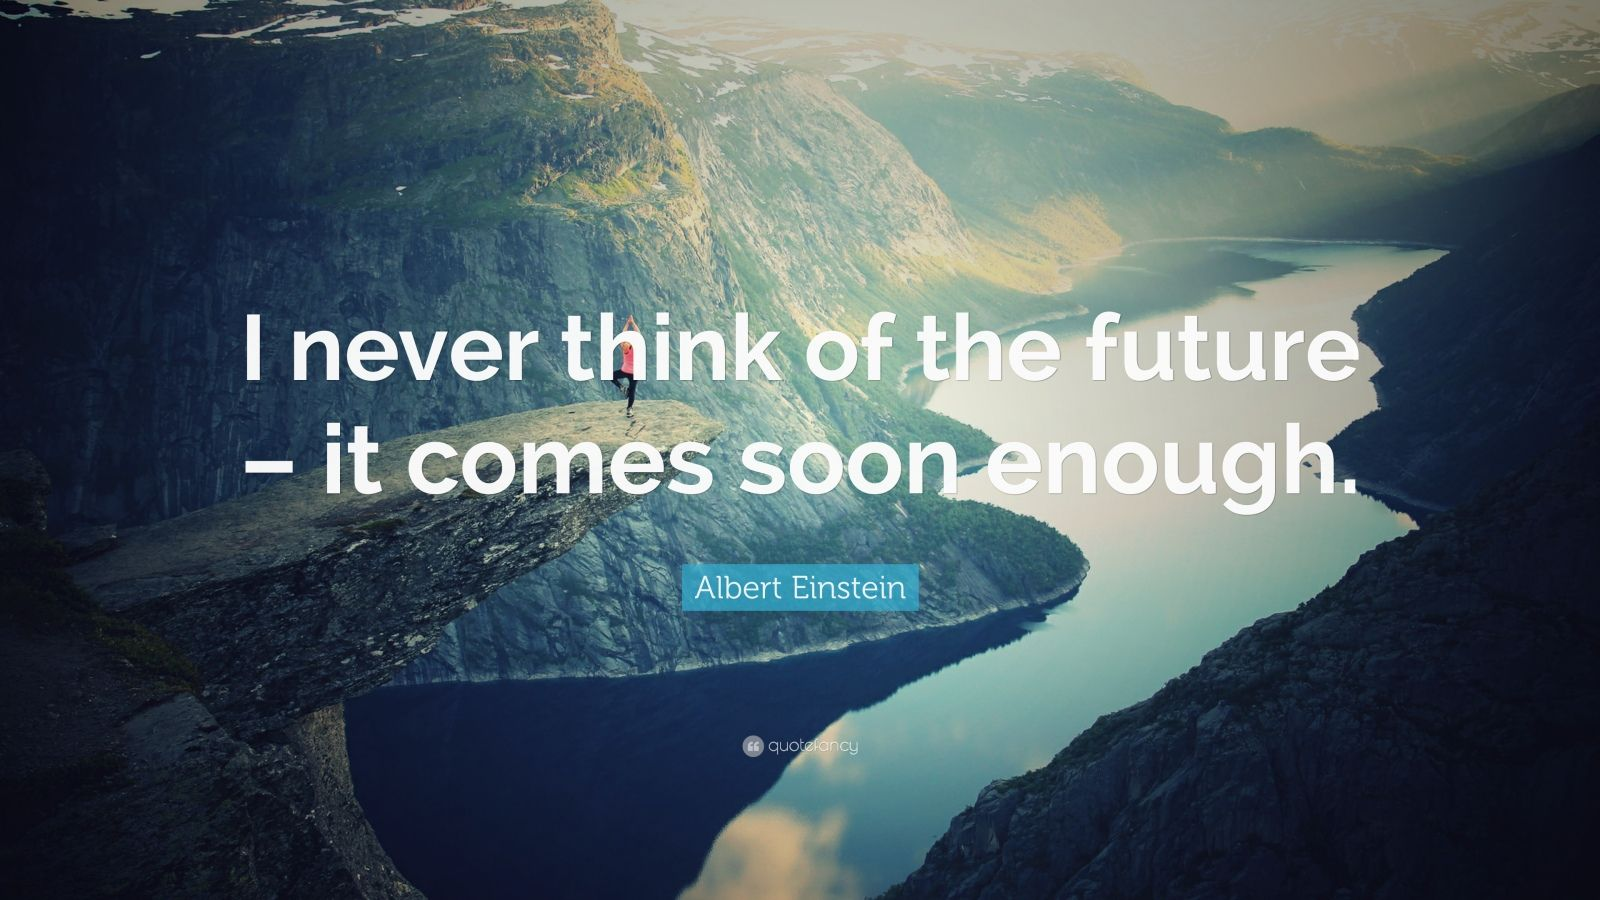 Albert Einstein Quote: U201cI Never Think Of The Future U2013 It Comes Soon Enough